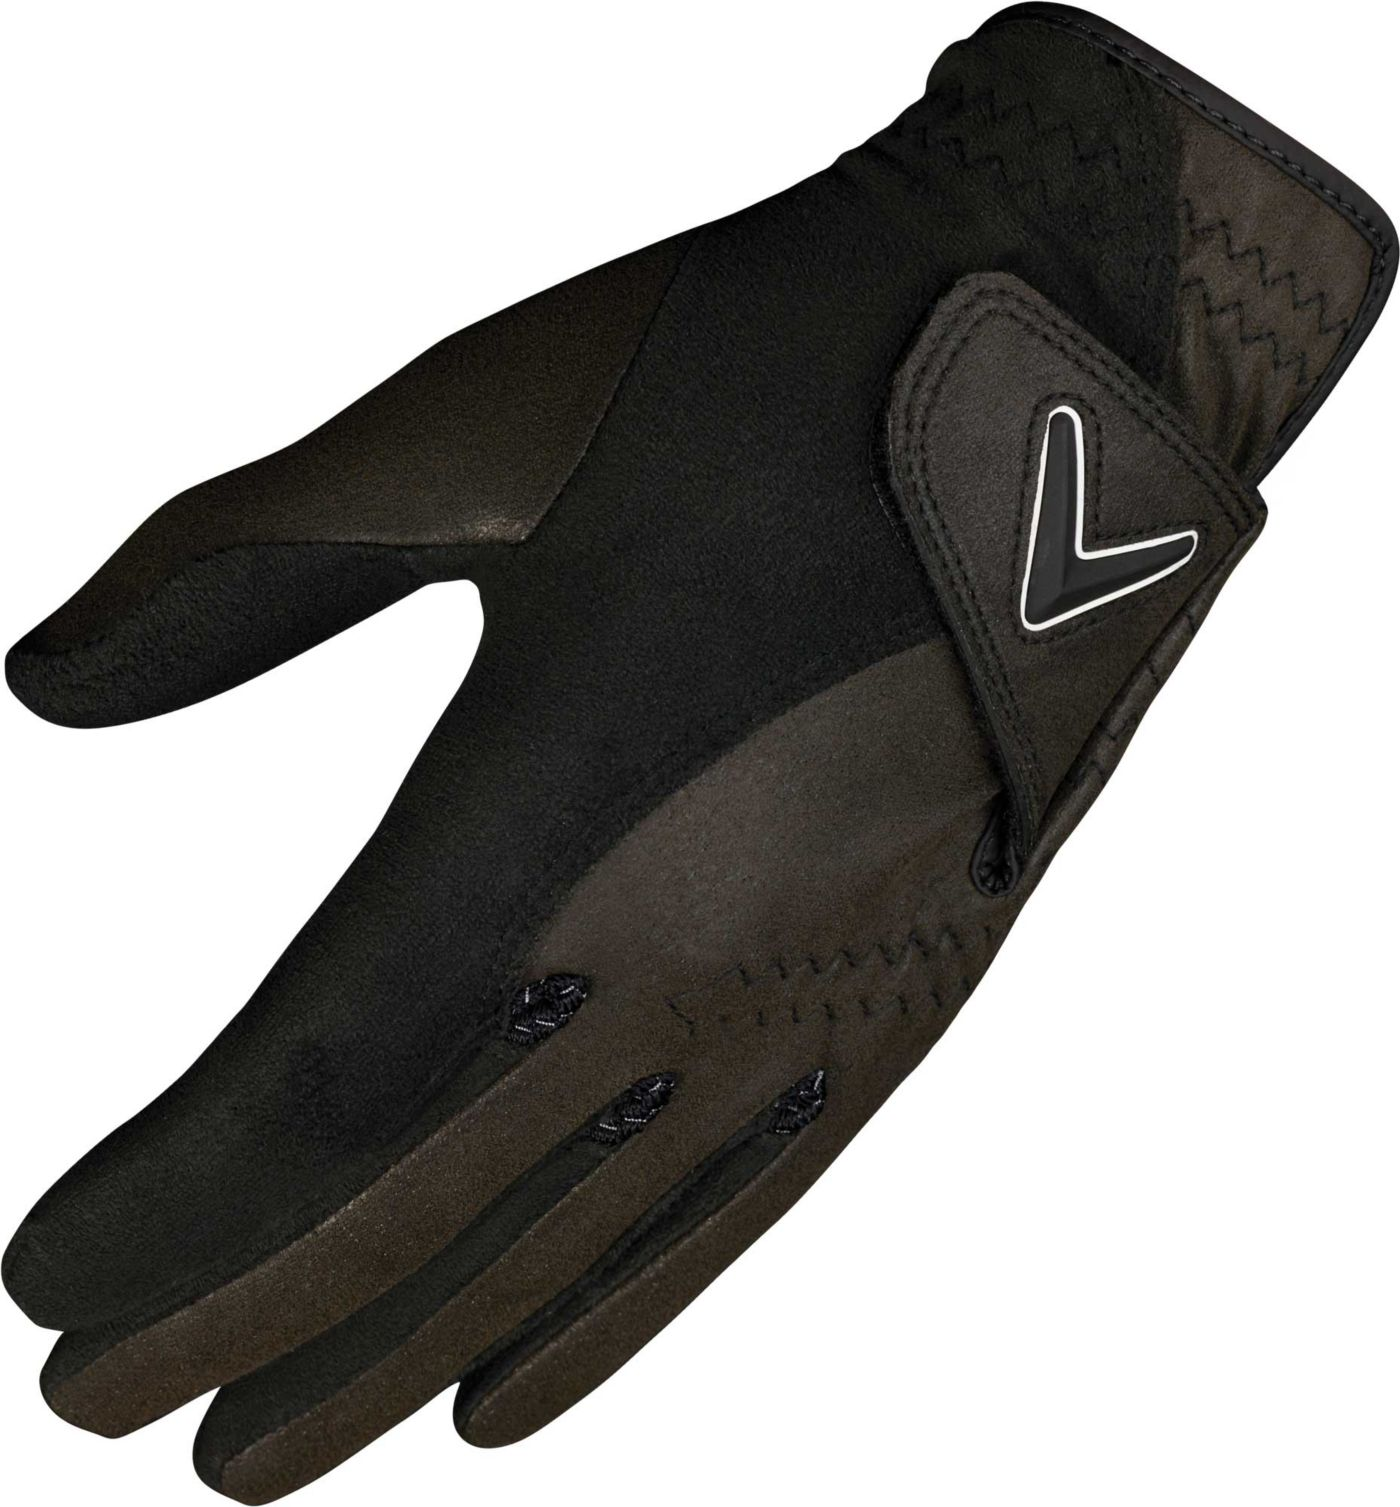 Callaway Men's Opti Grip Golf Gloves – 2 Pack